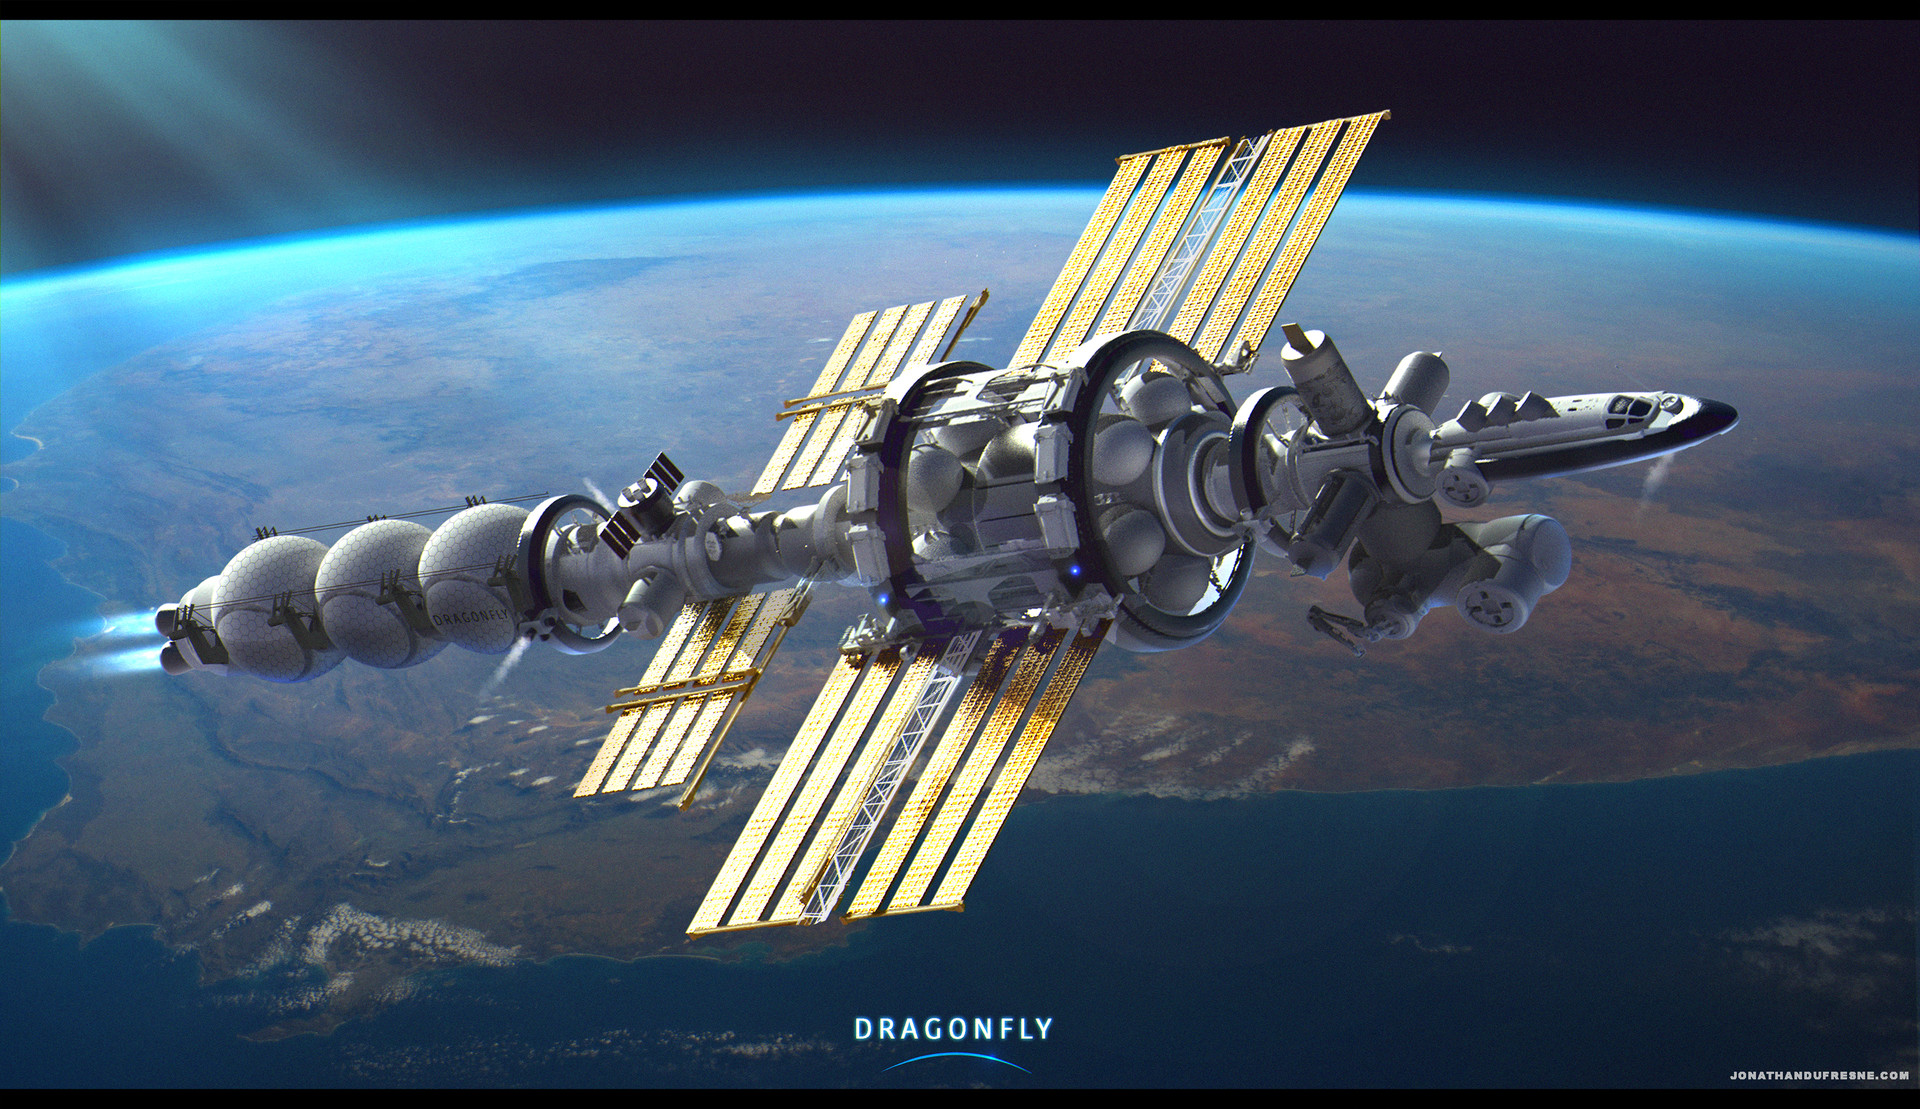 jonathan-dufresne-space-ship-painting-2